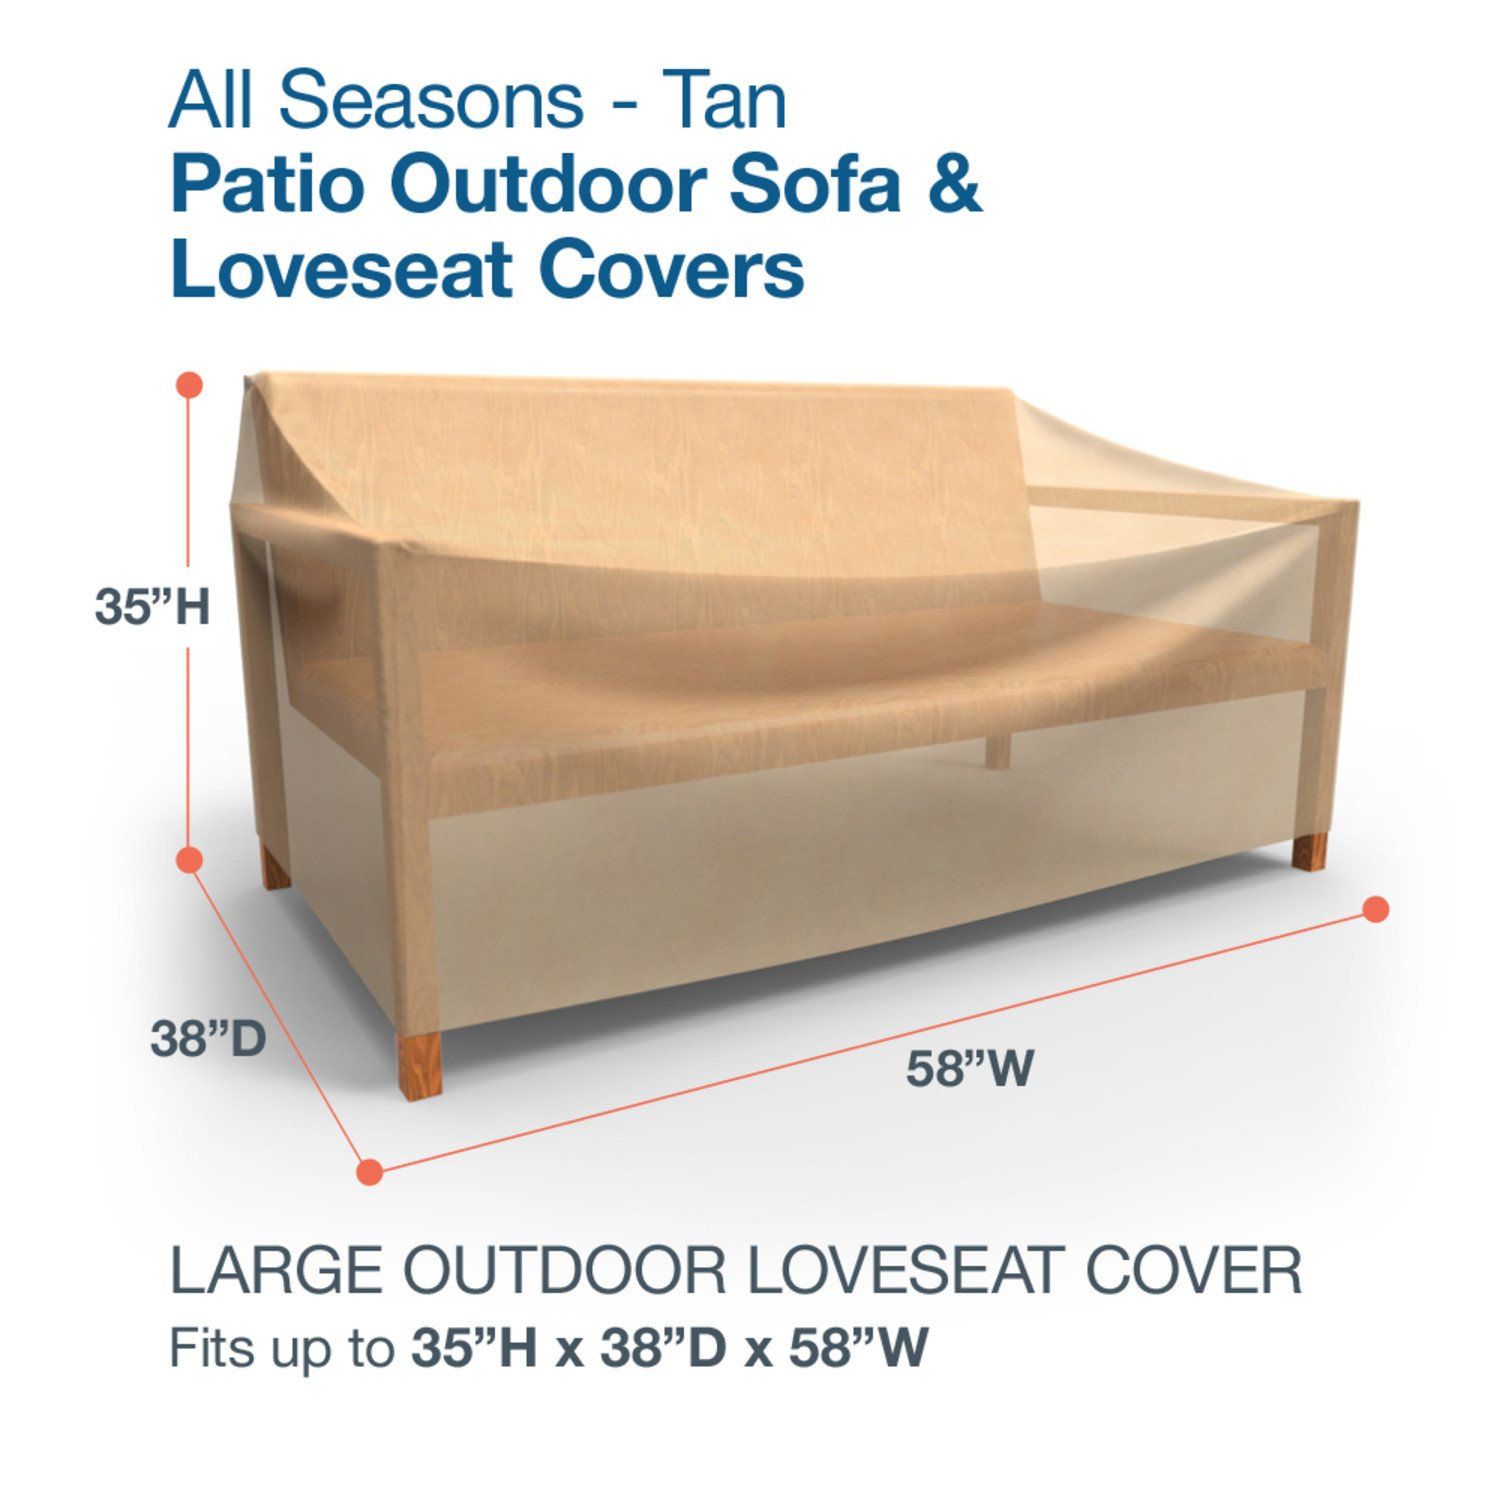 Amazing Amazon.com : Budge All Seasons Outdoor Patio Loveseat Cover, Large (Tan) :  Patio Chair Covers : Garden U0026 Outdoor